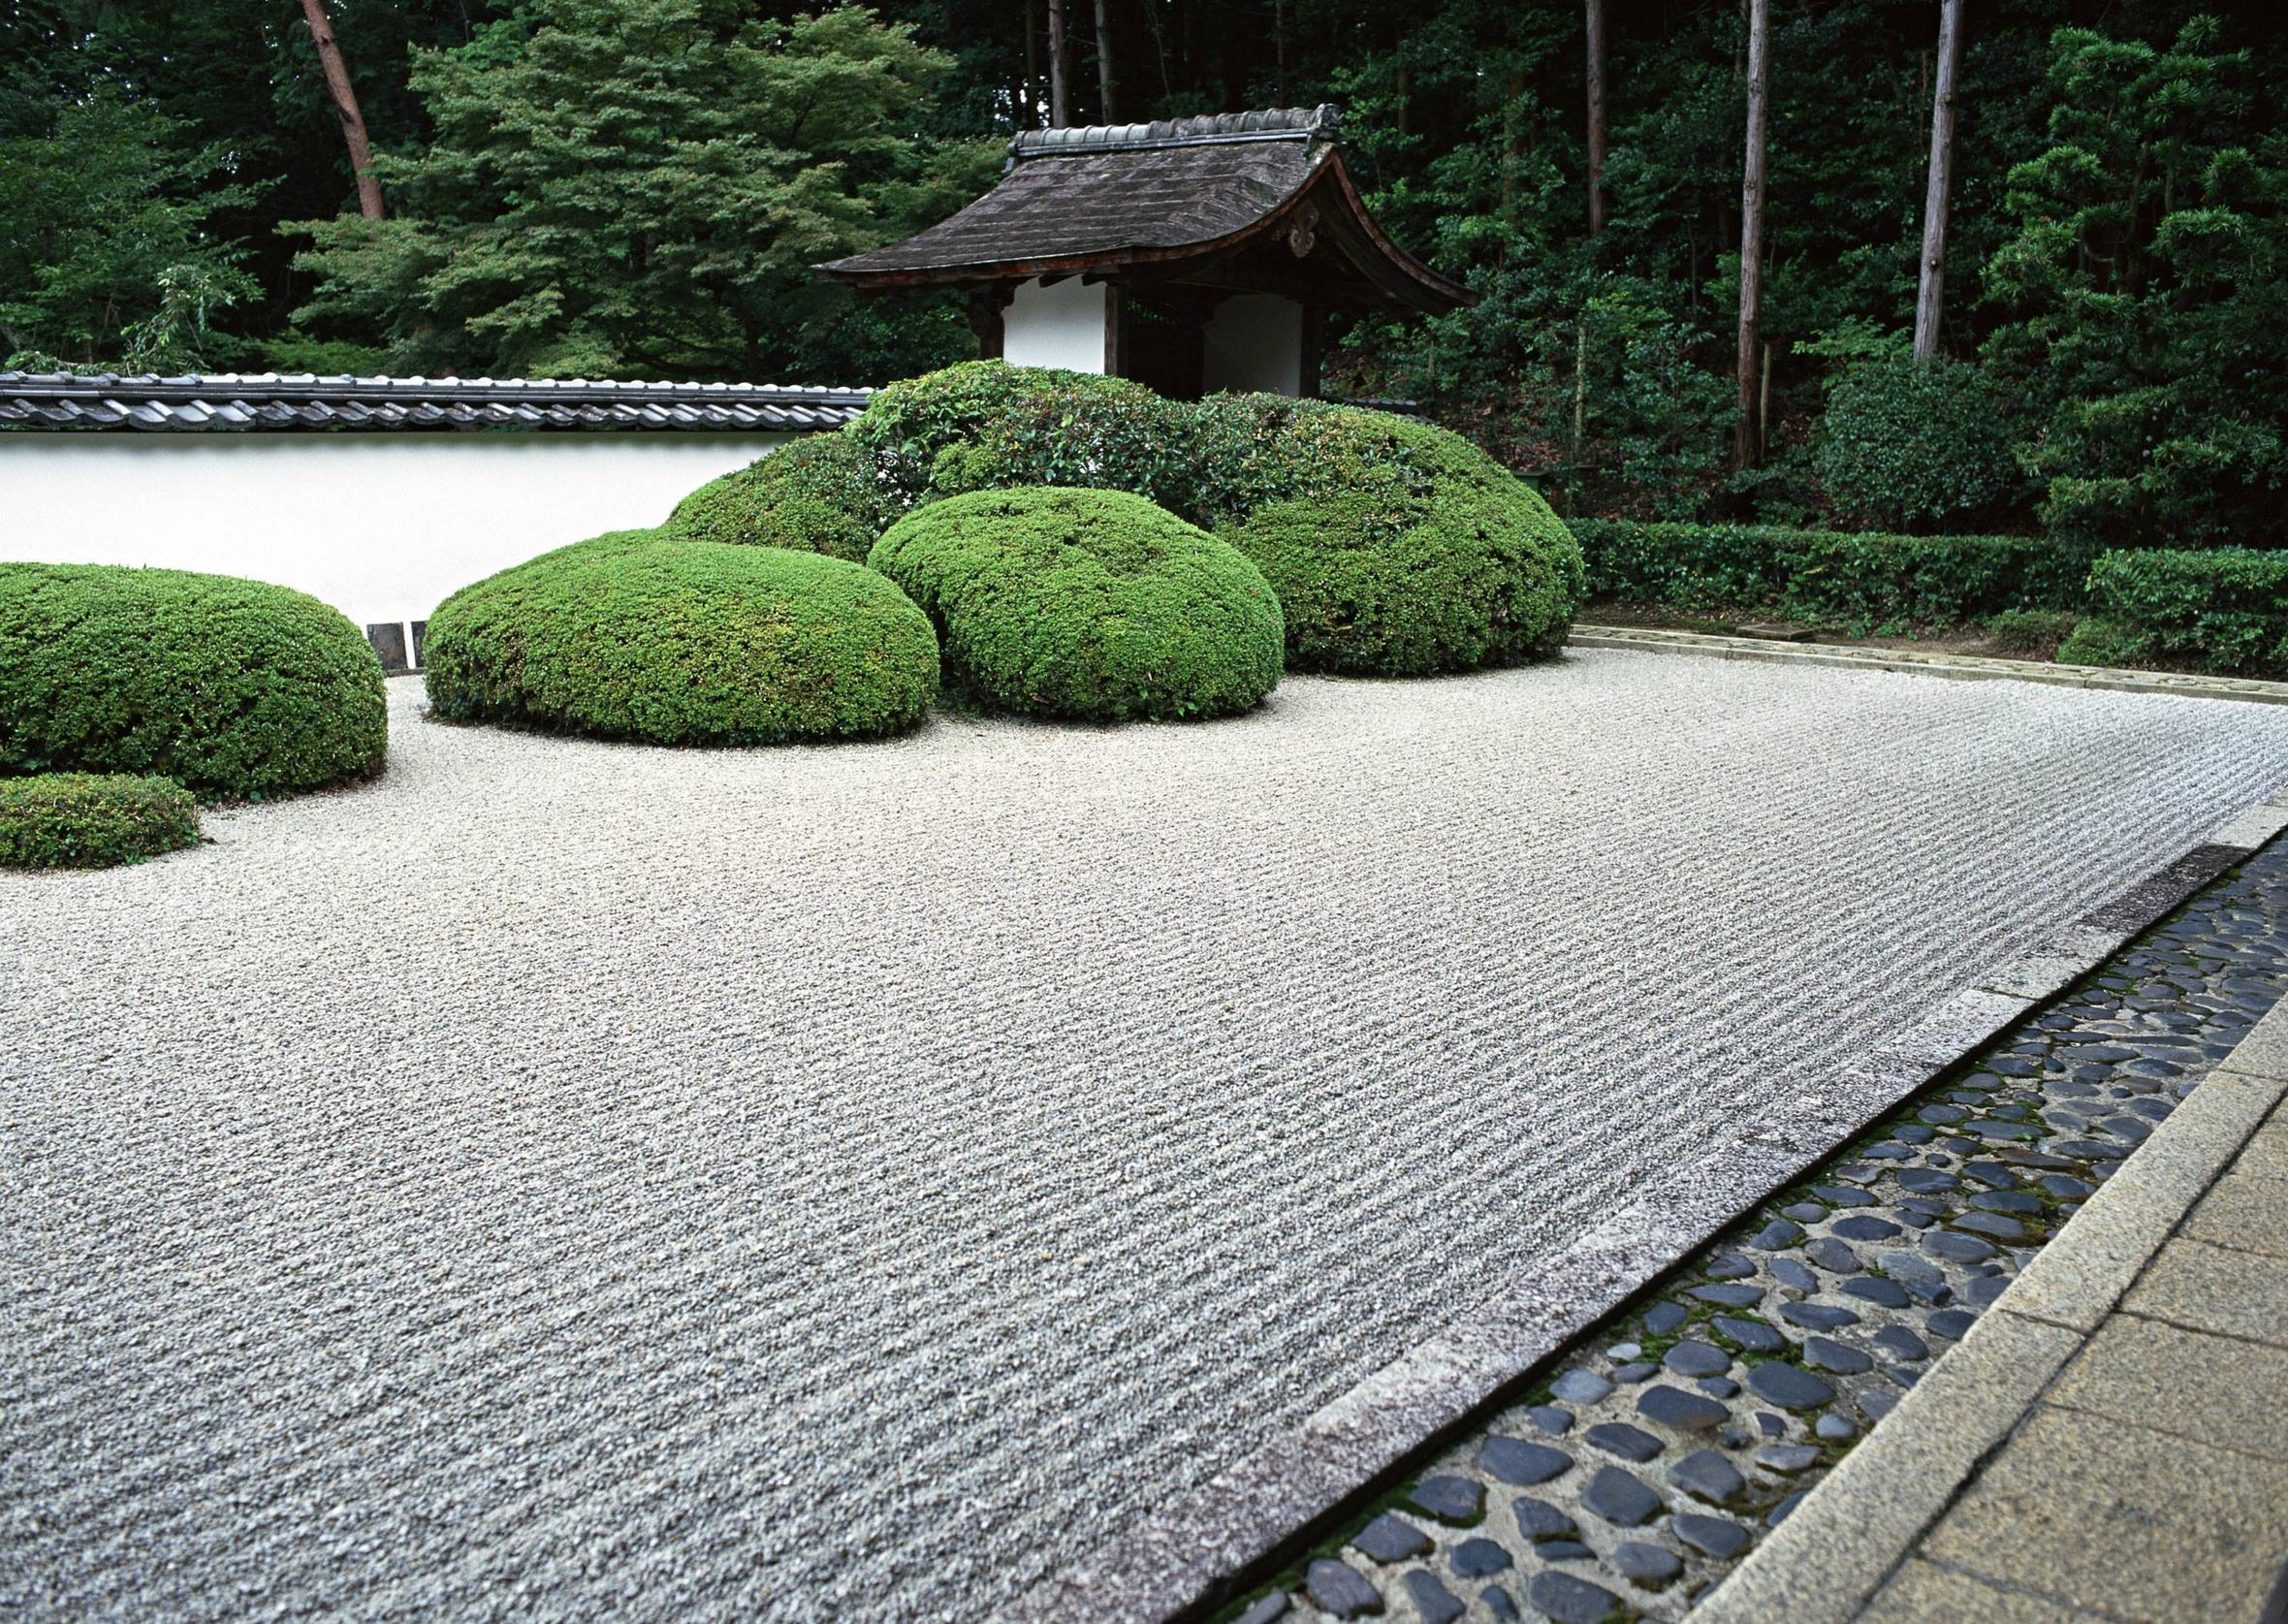 Zen rock garden wallpaper - Wallpapers For Zen Garden Wallpaper Widescreen